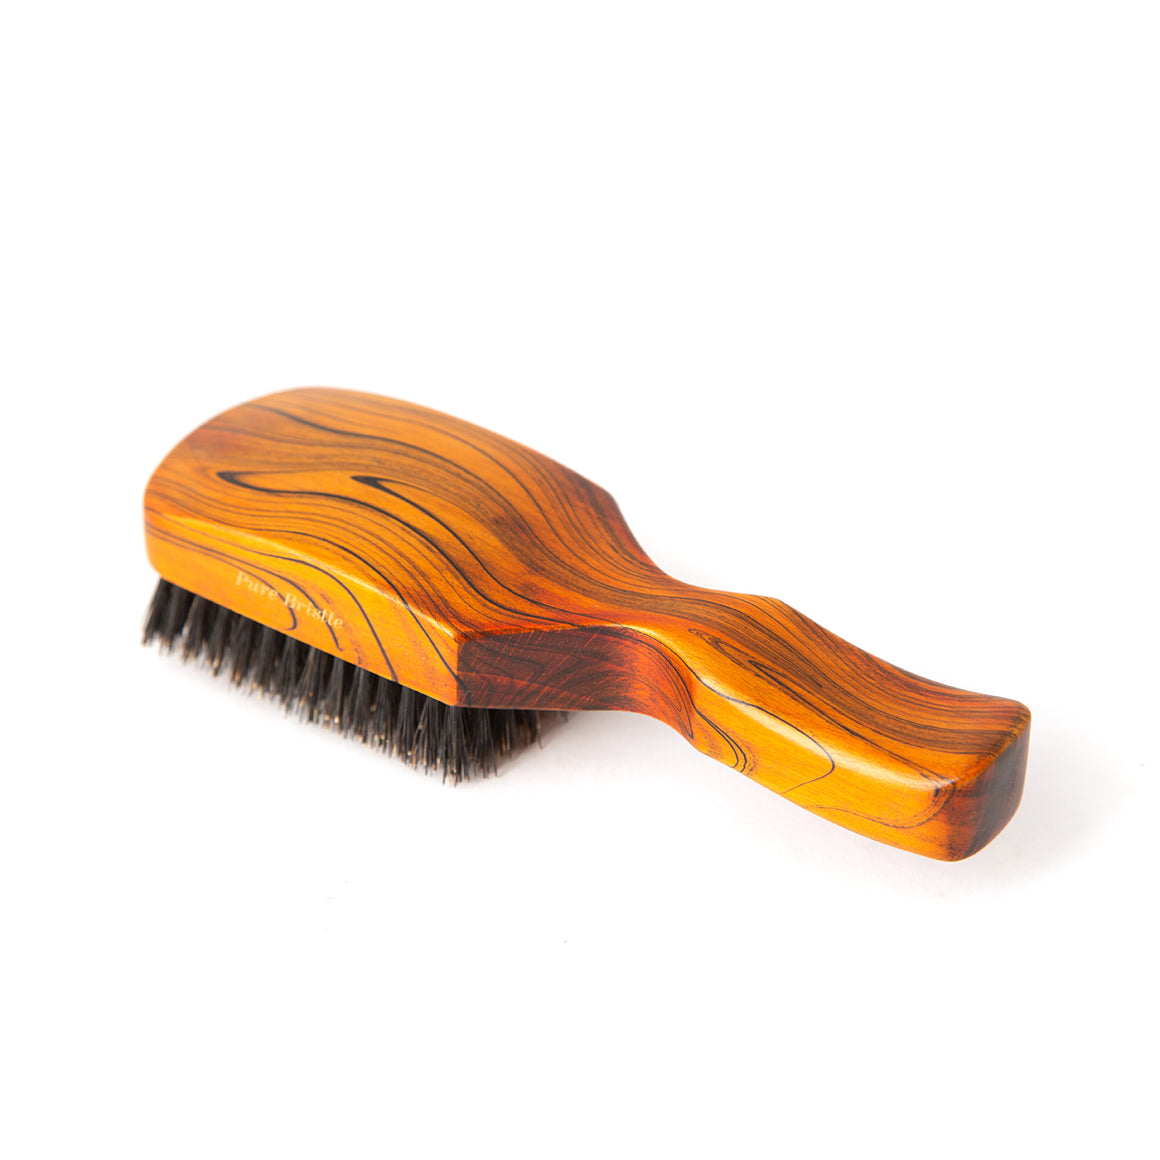 Taylor of Old Bond Street Dark Wood Club Hairbrush